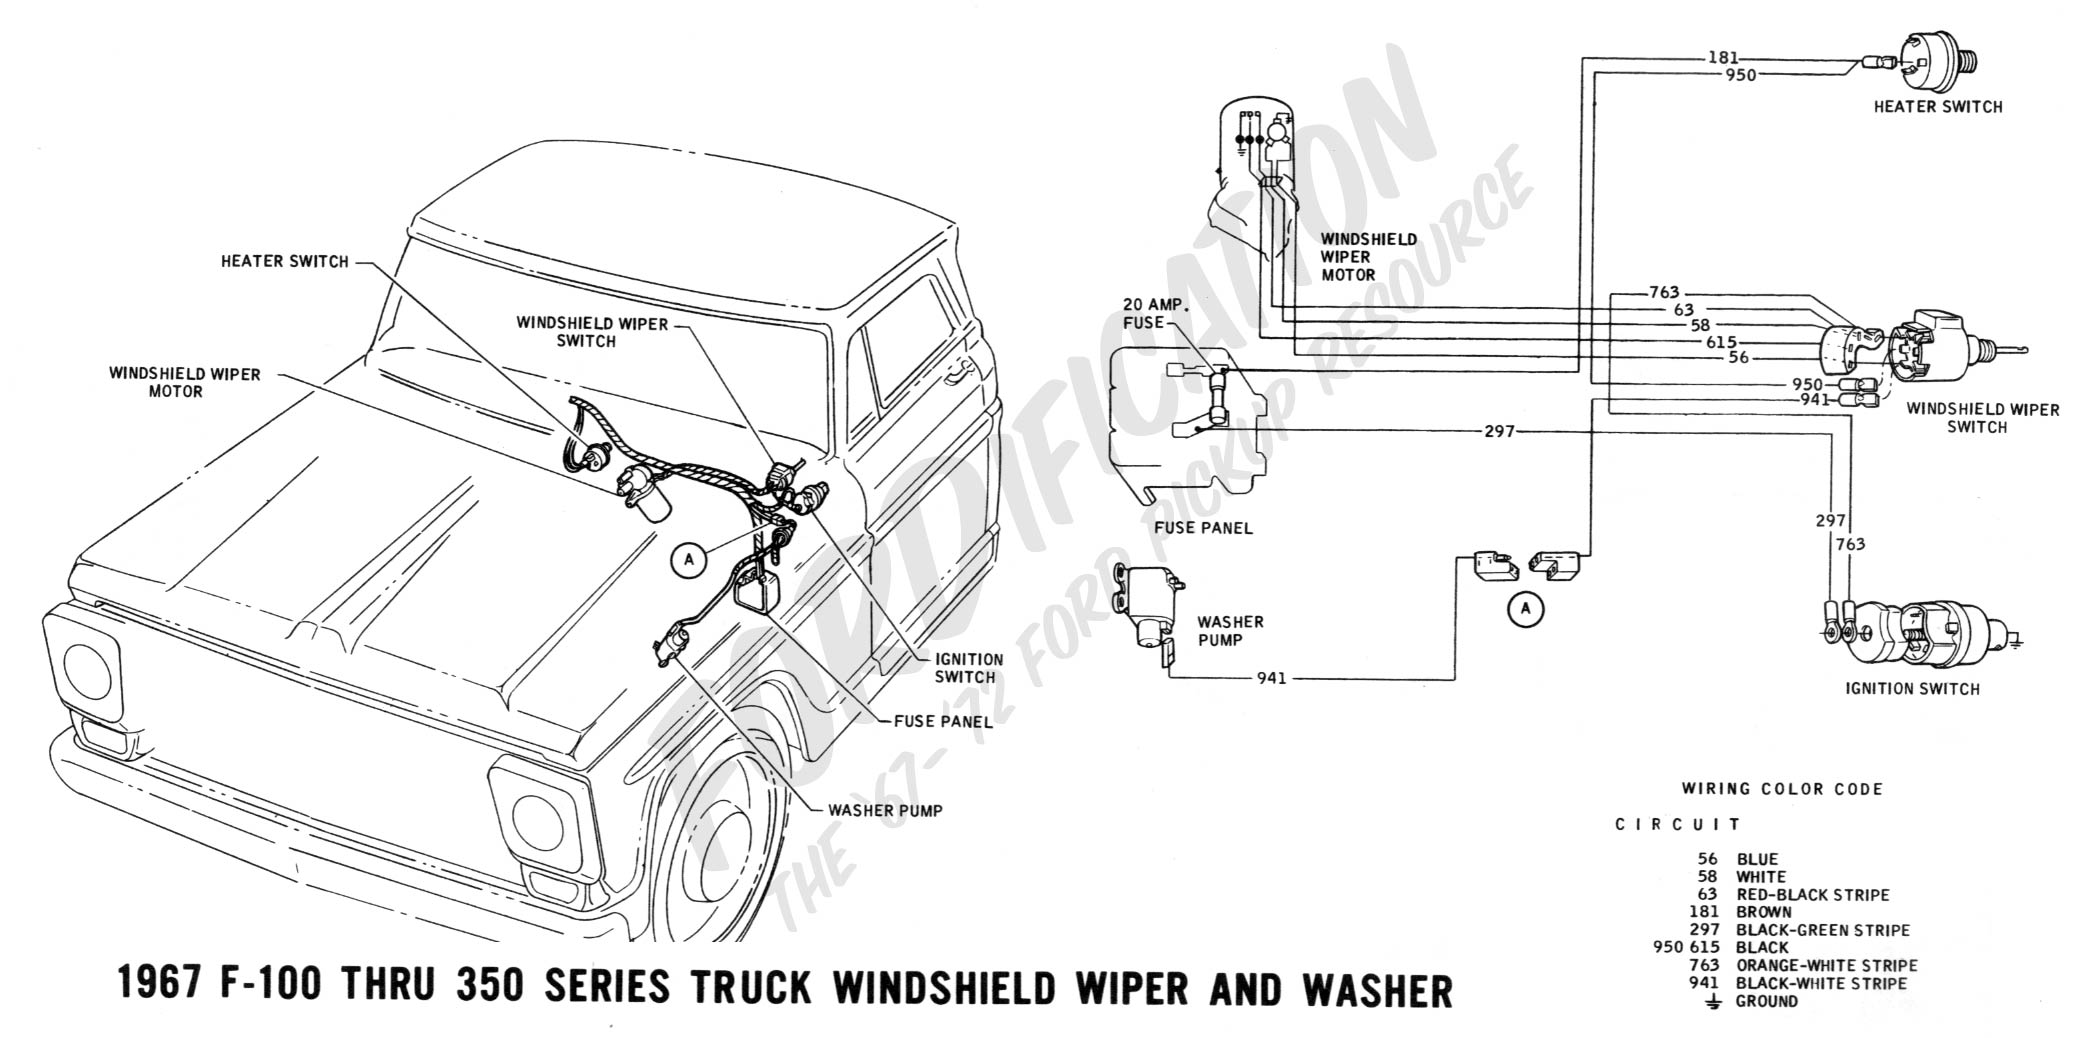 wiring 1967wipers wiper wiring diagram wiper wiring diagram for 1985 chevy vega 1999 ford explorer rear wiper wiring diagram at aneh.co